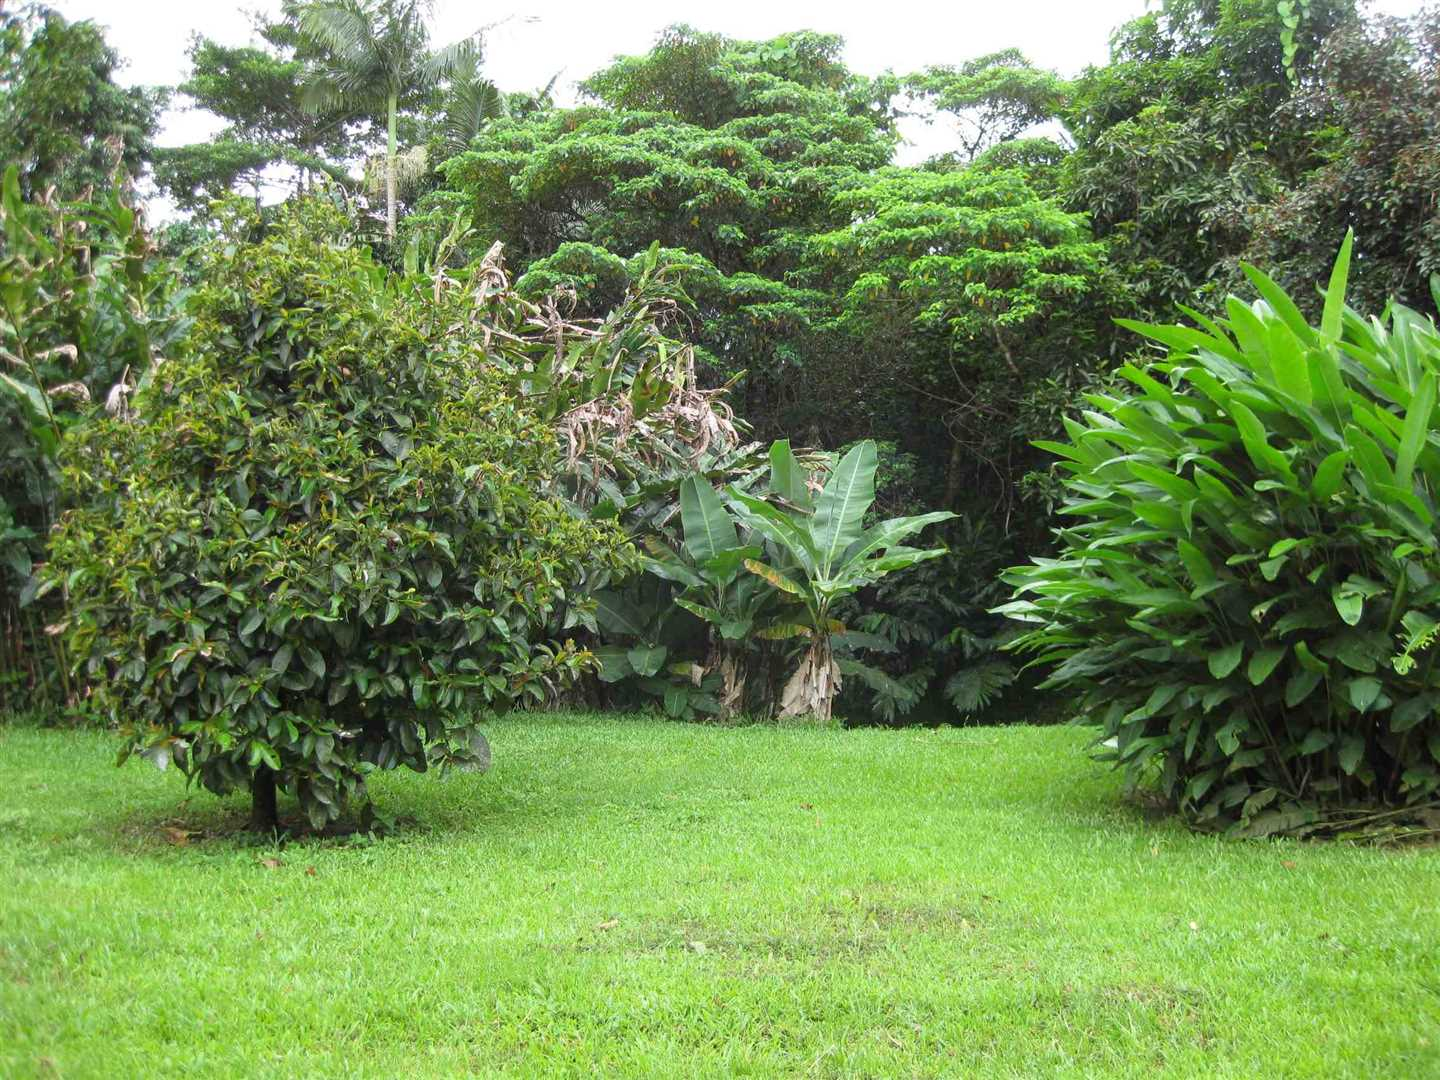 View of part of grounds adjacent to the home